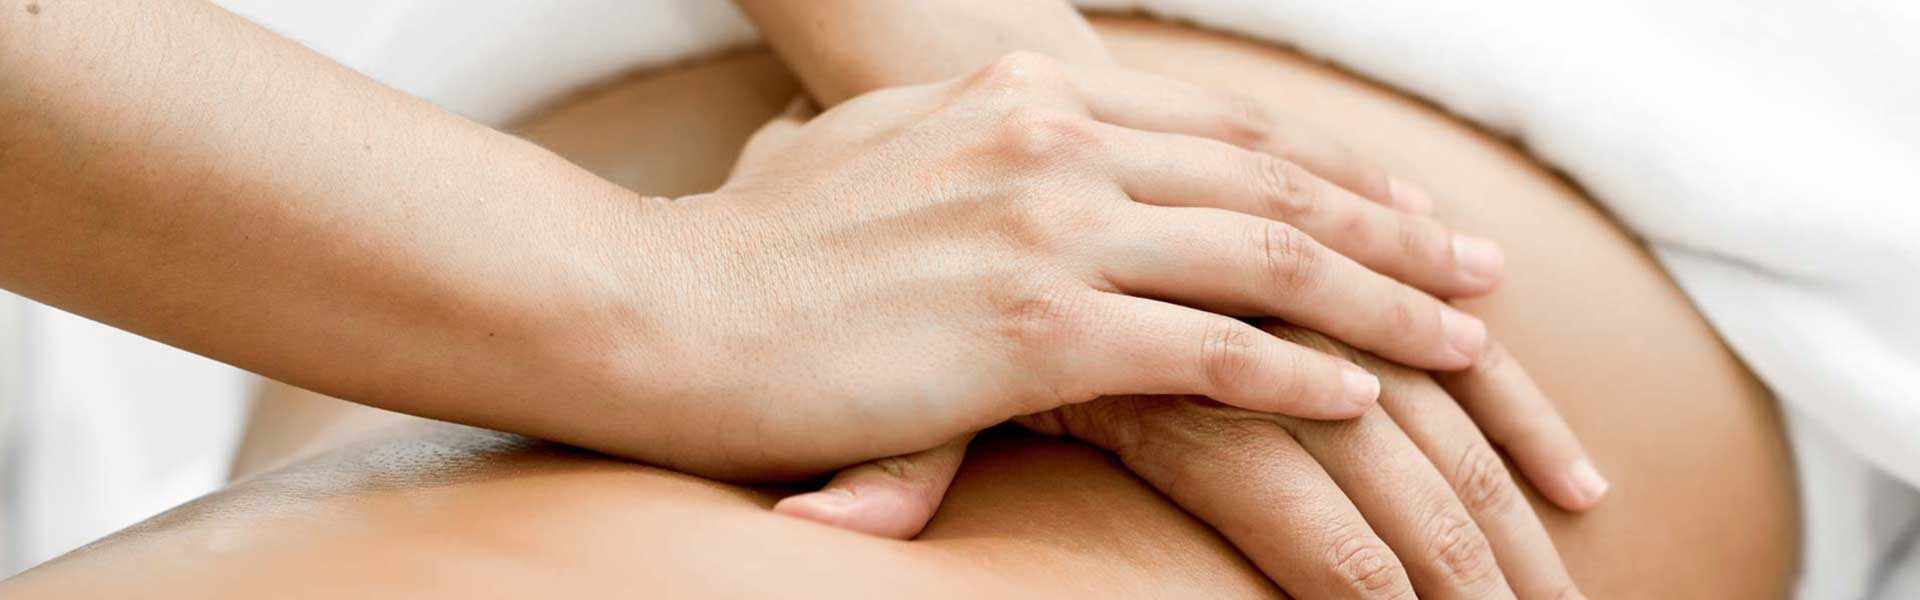 Massage Therapy Simcoe Ontario